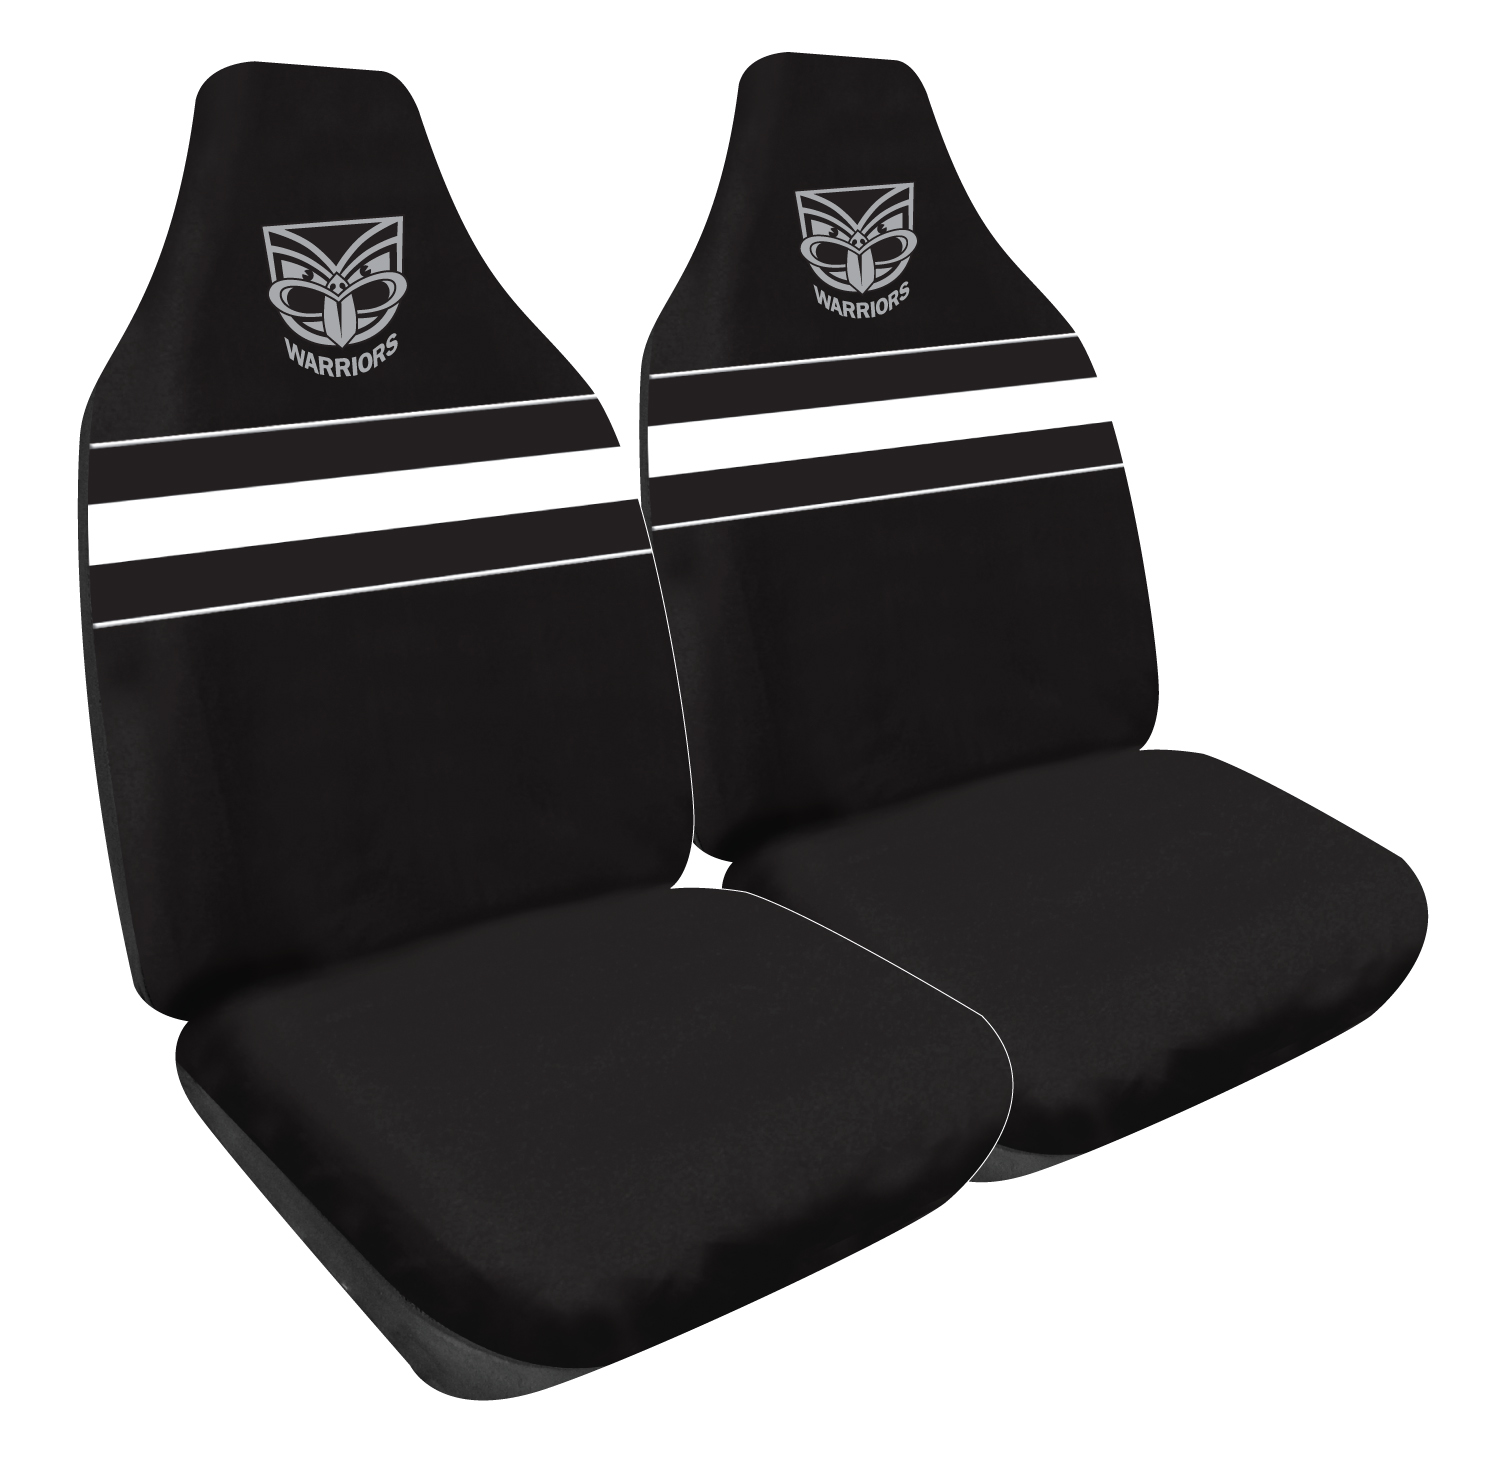 Car Seat Covers NRL Auckland Warriors